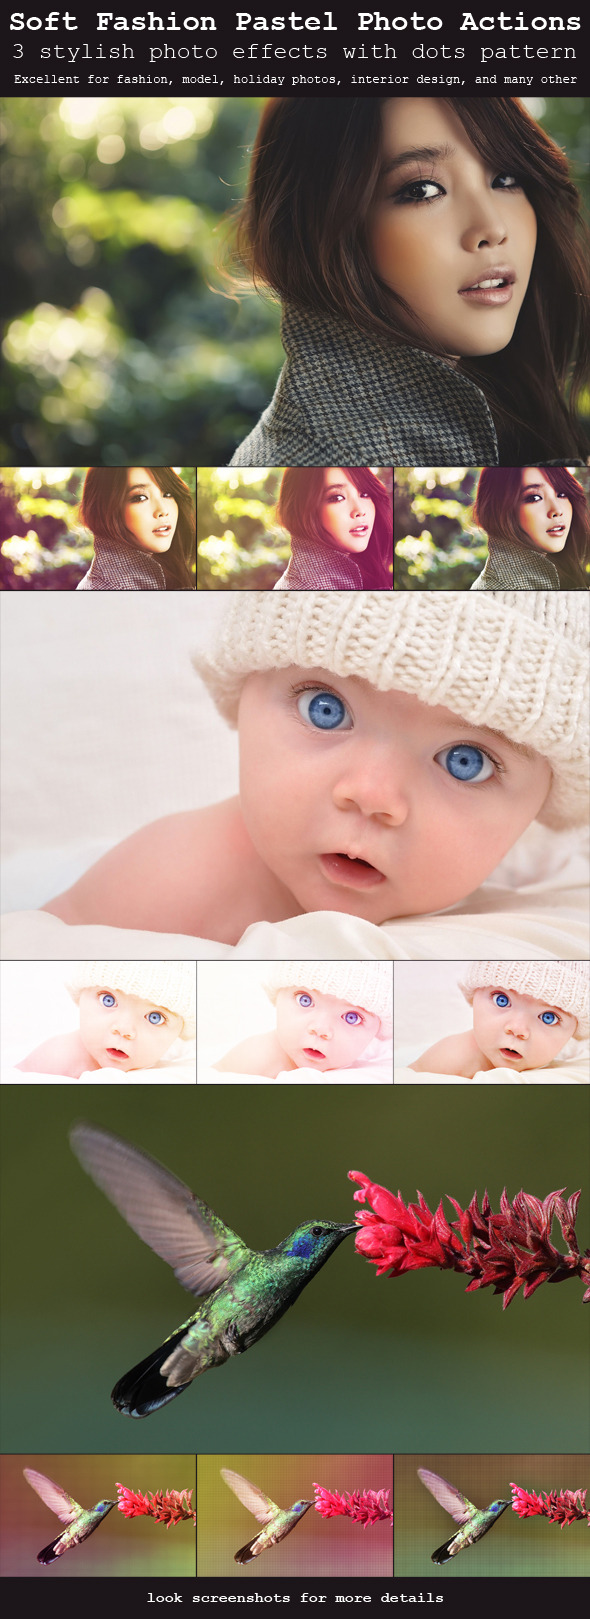 Soft Fashion Pastel Photo Actions - Photo Effects Actions